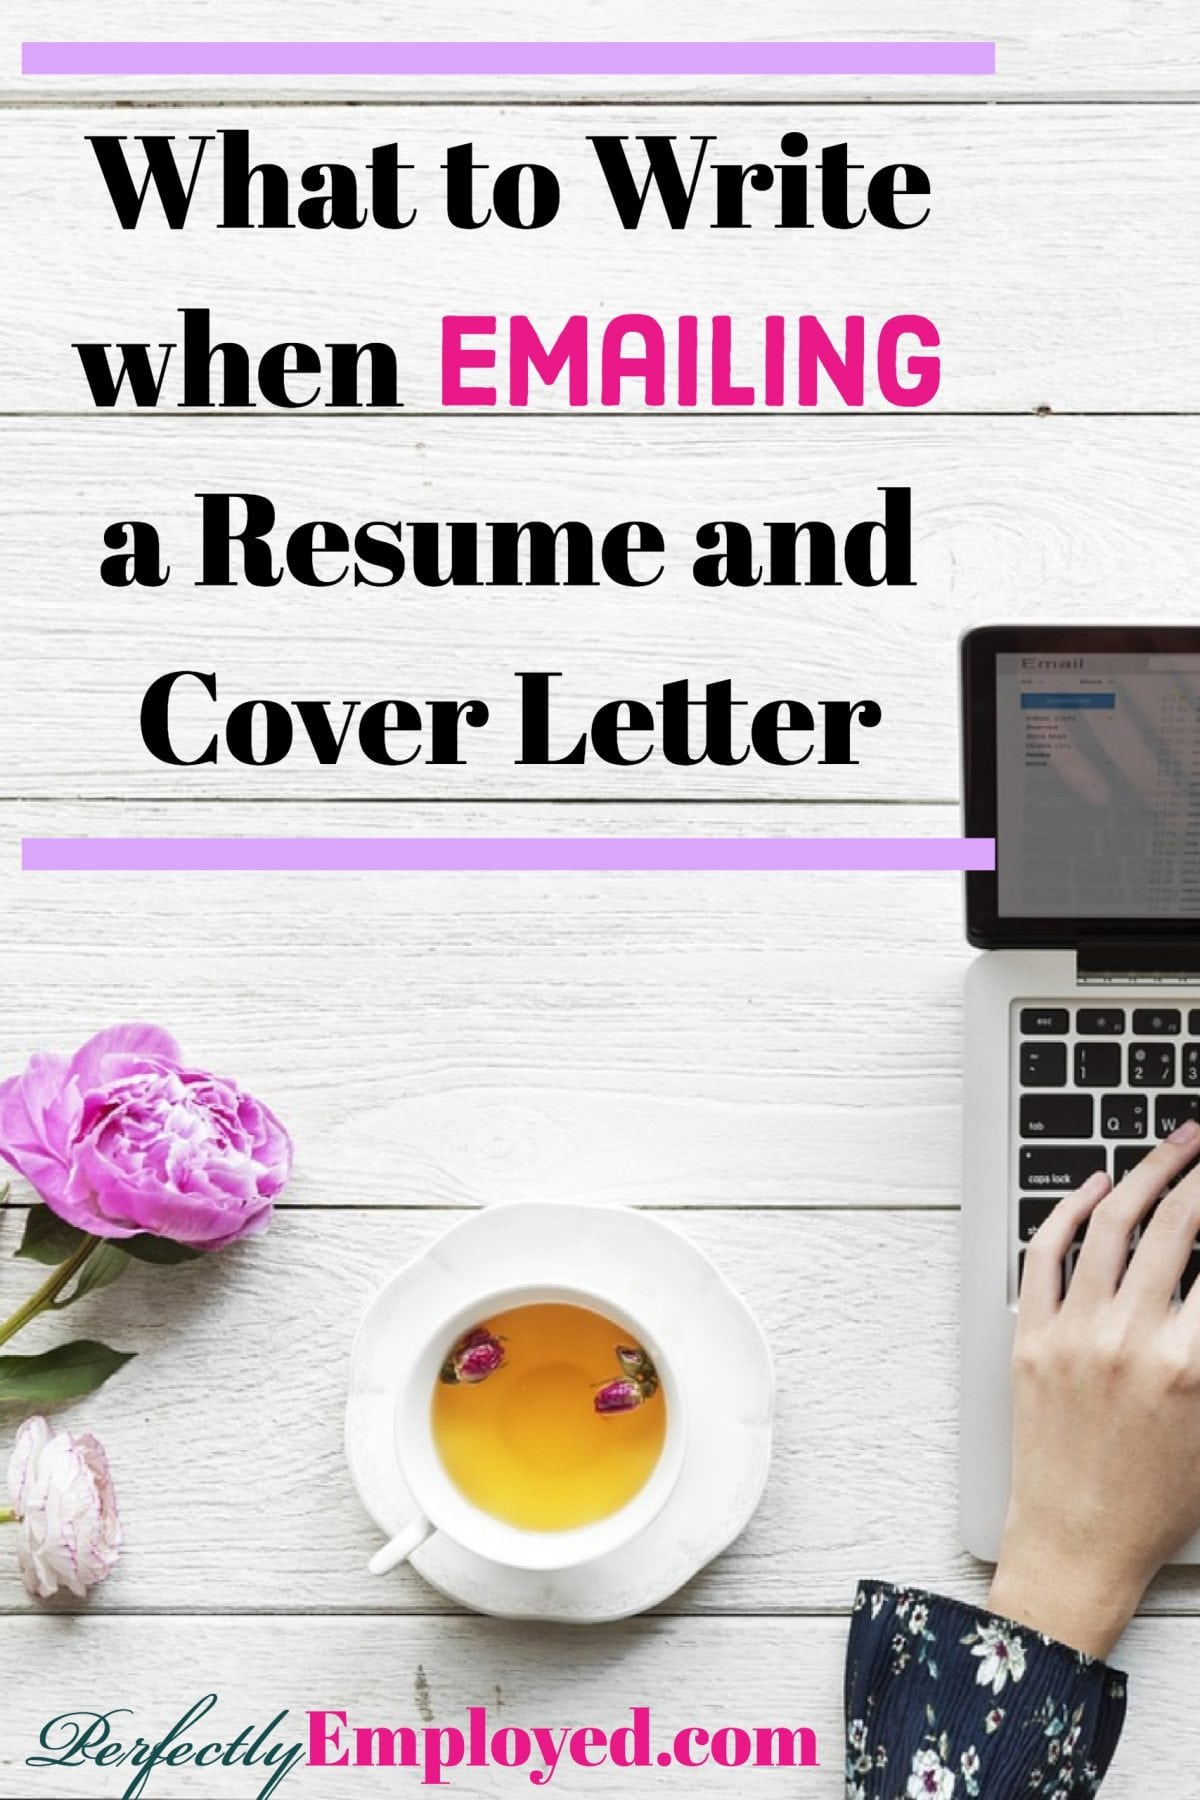 when emailing a resumes